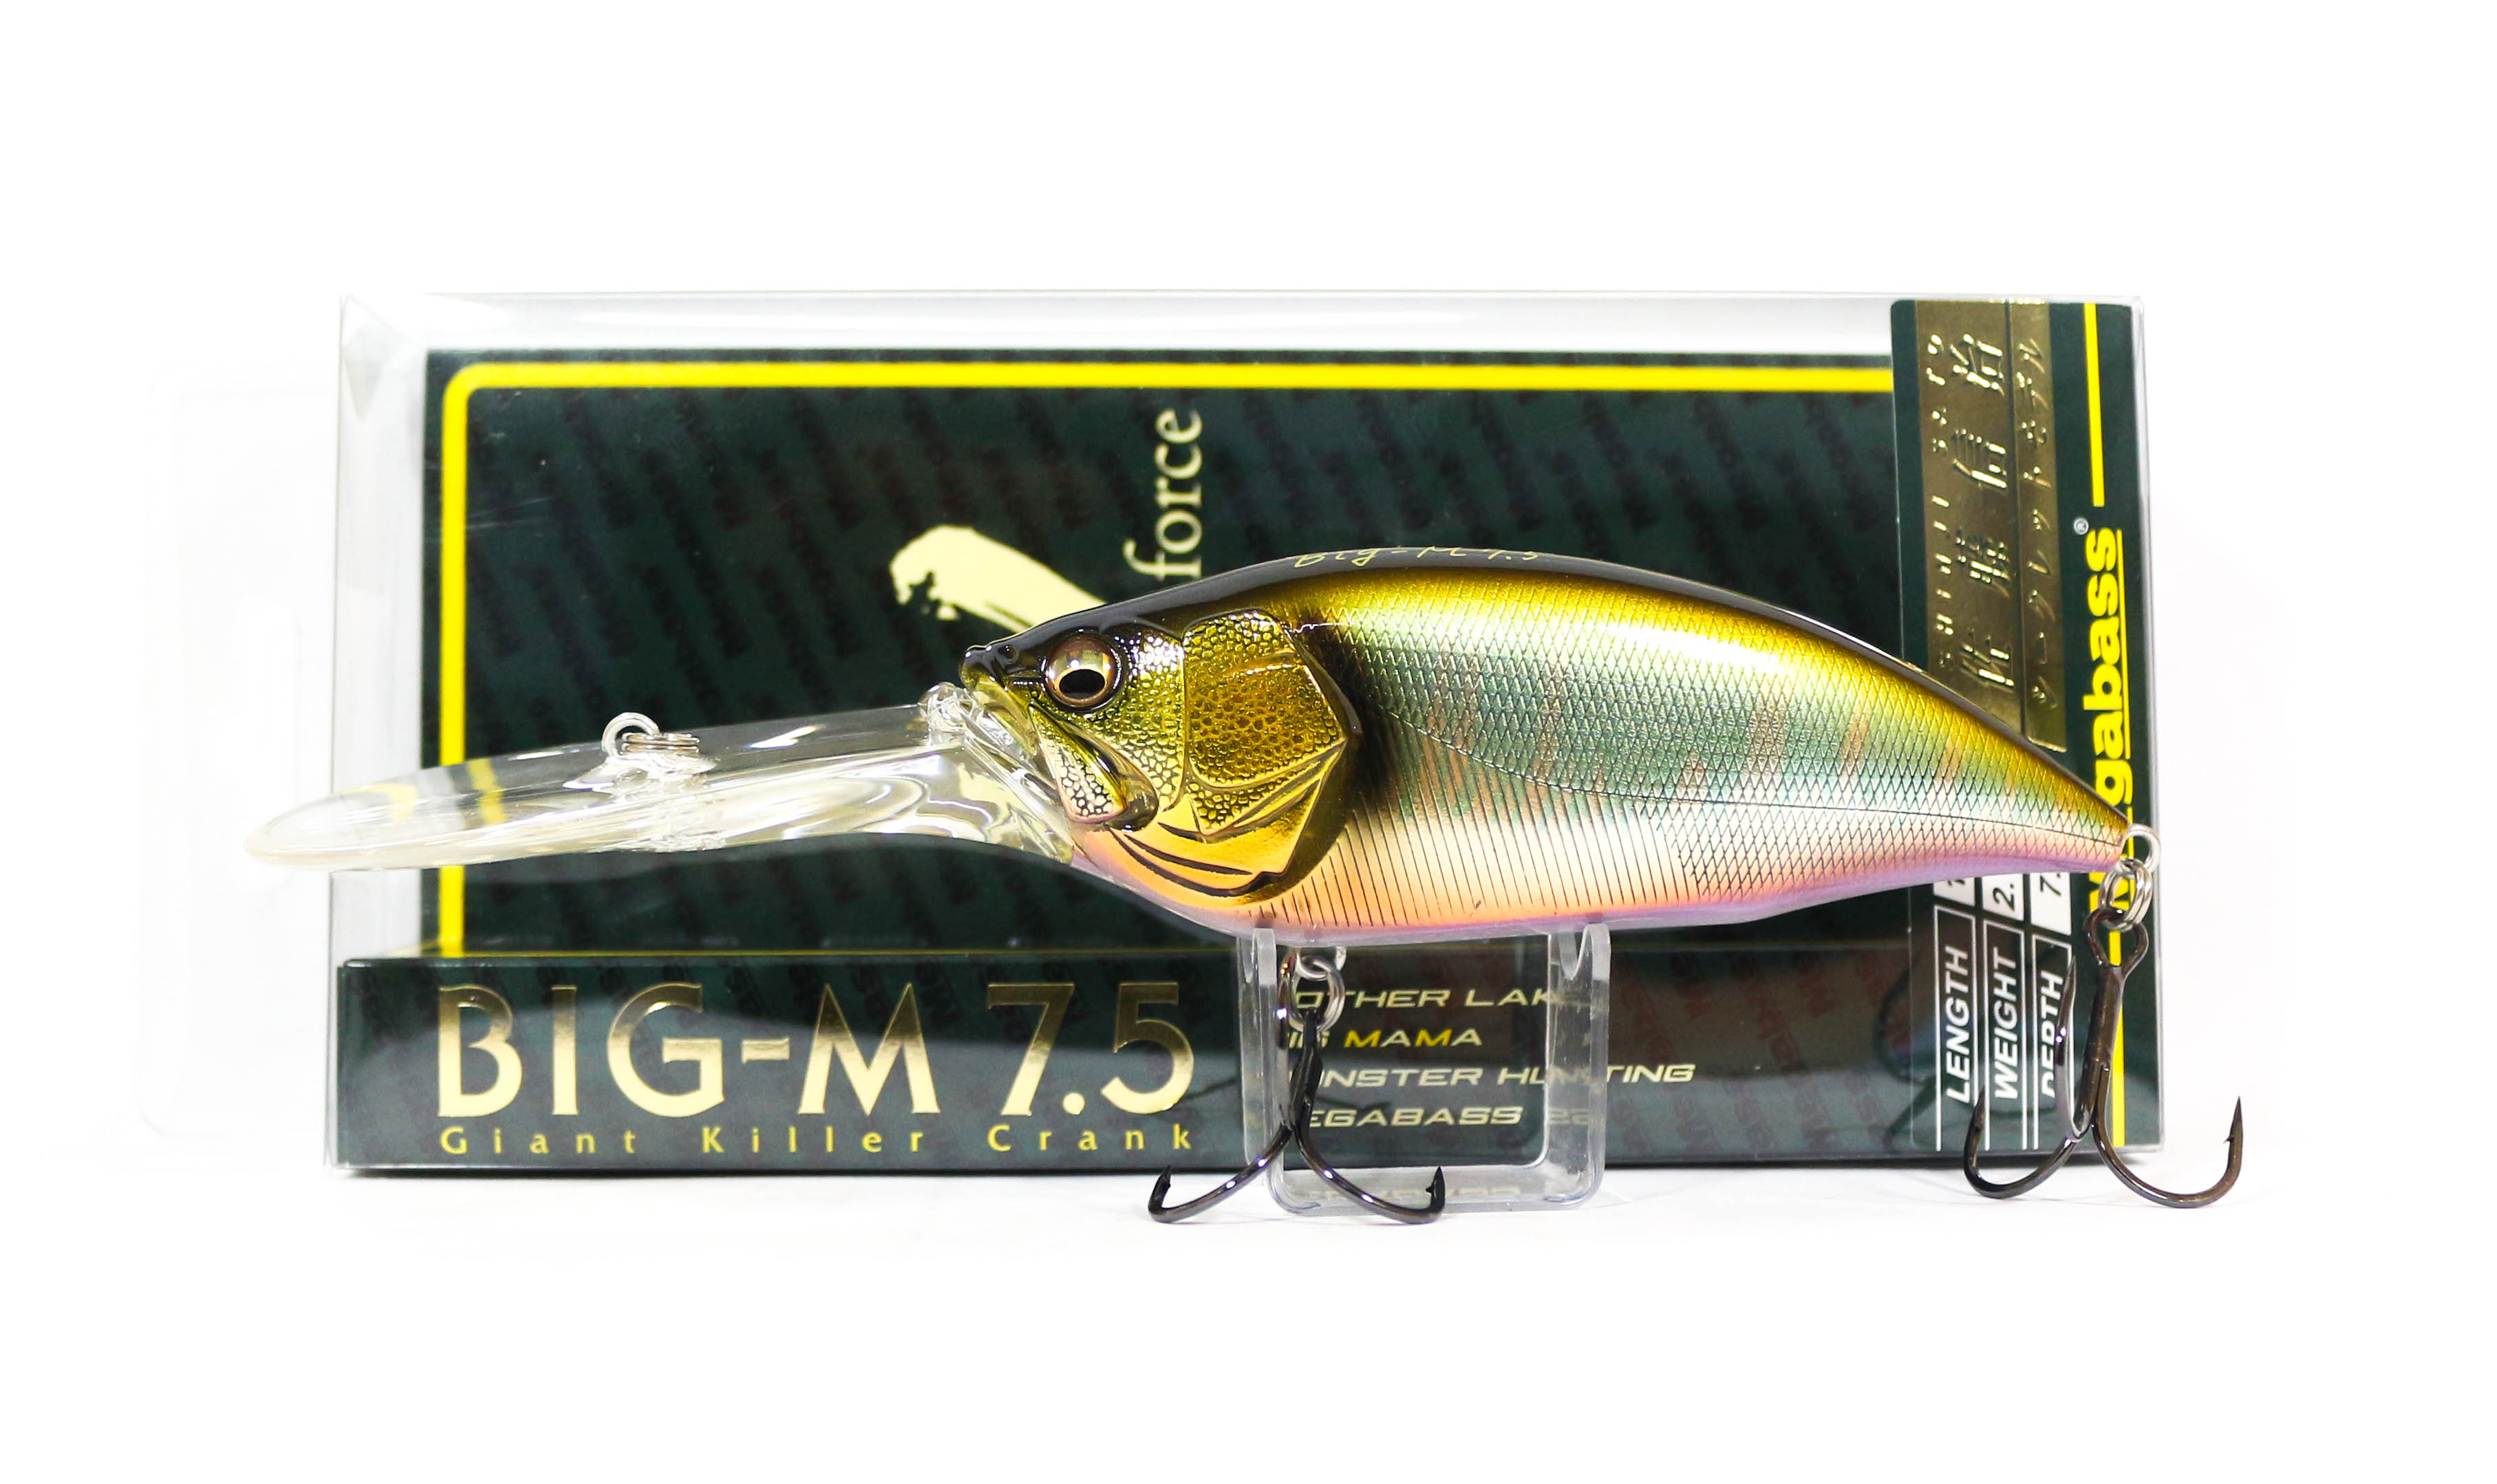 Megabass Big M 7.5 Giant Crank 114 mm Floating Lure Wagin Oikawa (2671)